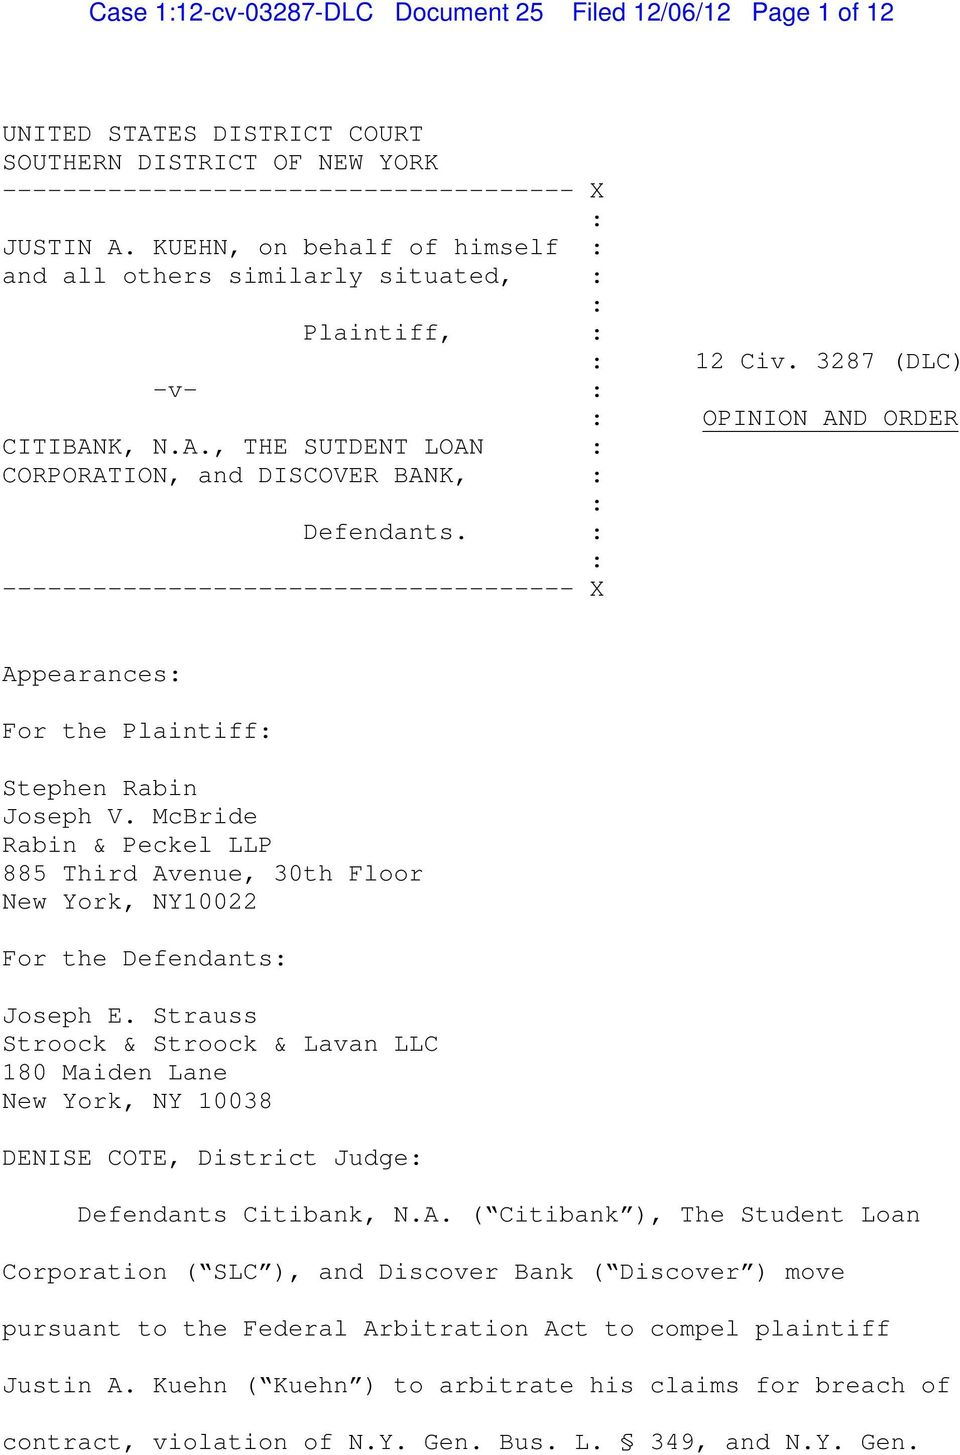 -------------------------------------- X X 12 Civ. 3287 (DLC) OPINION AND ORDER Appearances For the Plaintiff Stephen Rabin Joseph V.